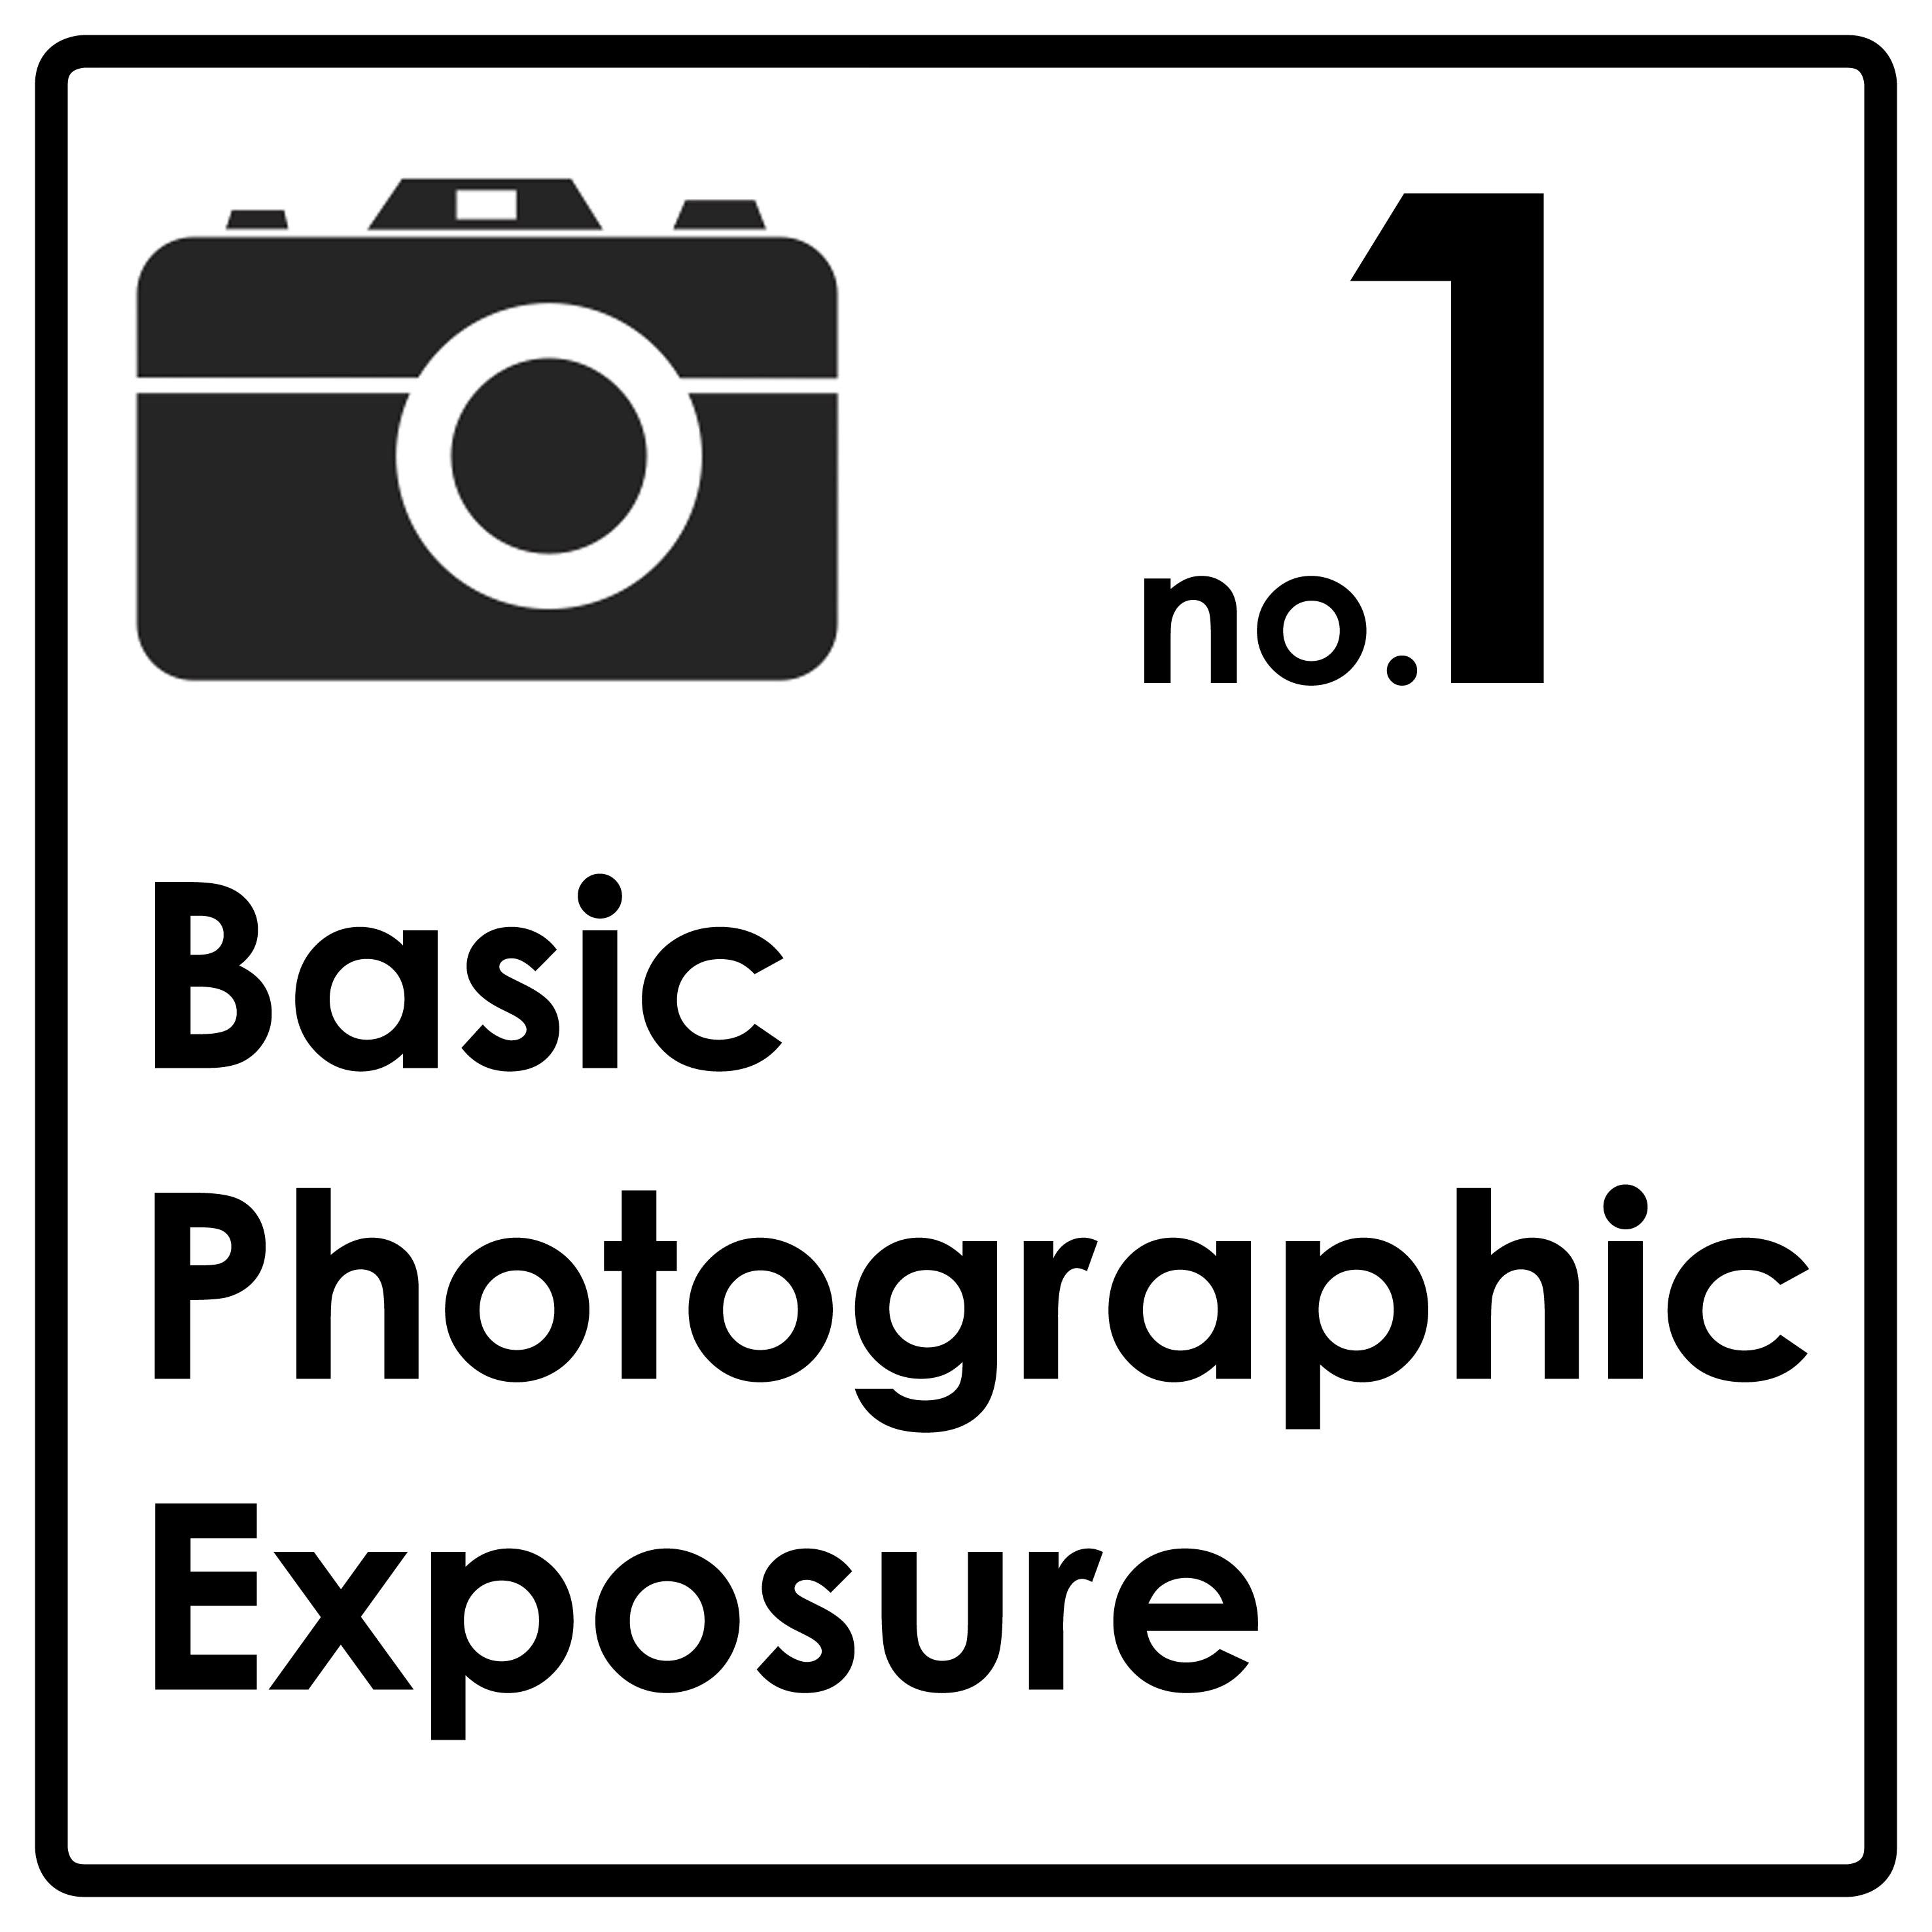 Winchester Photography Workshops - Basic Manual Exposure